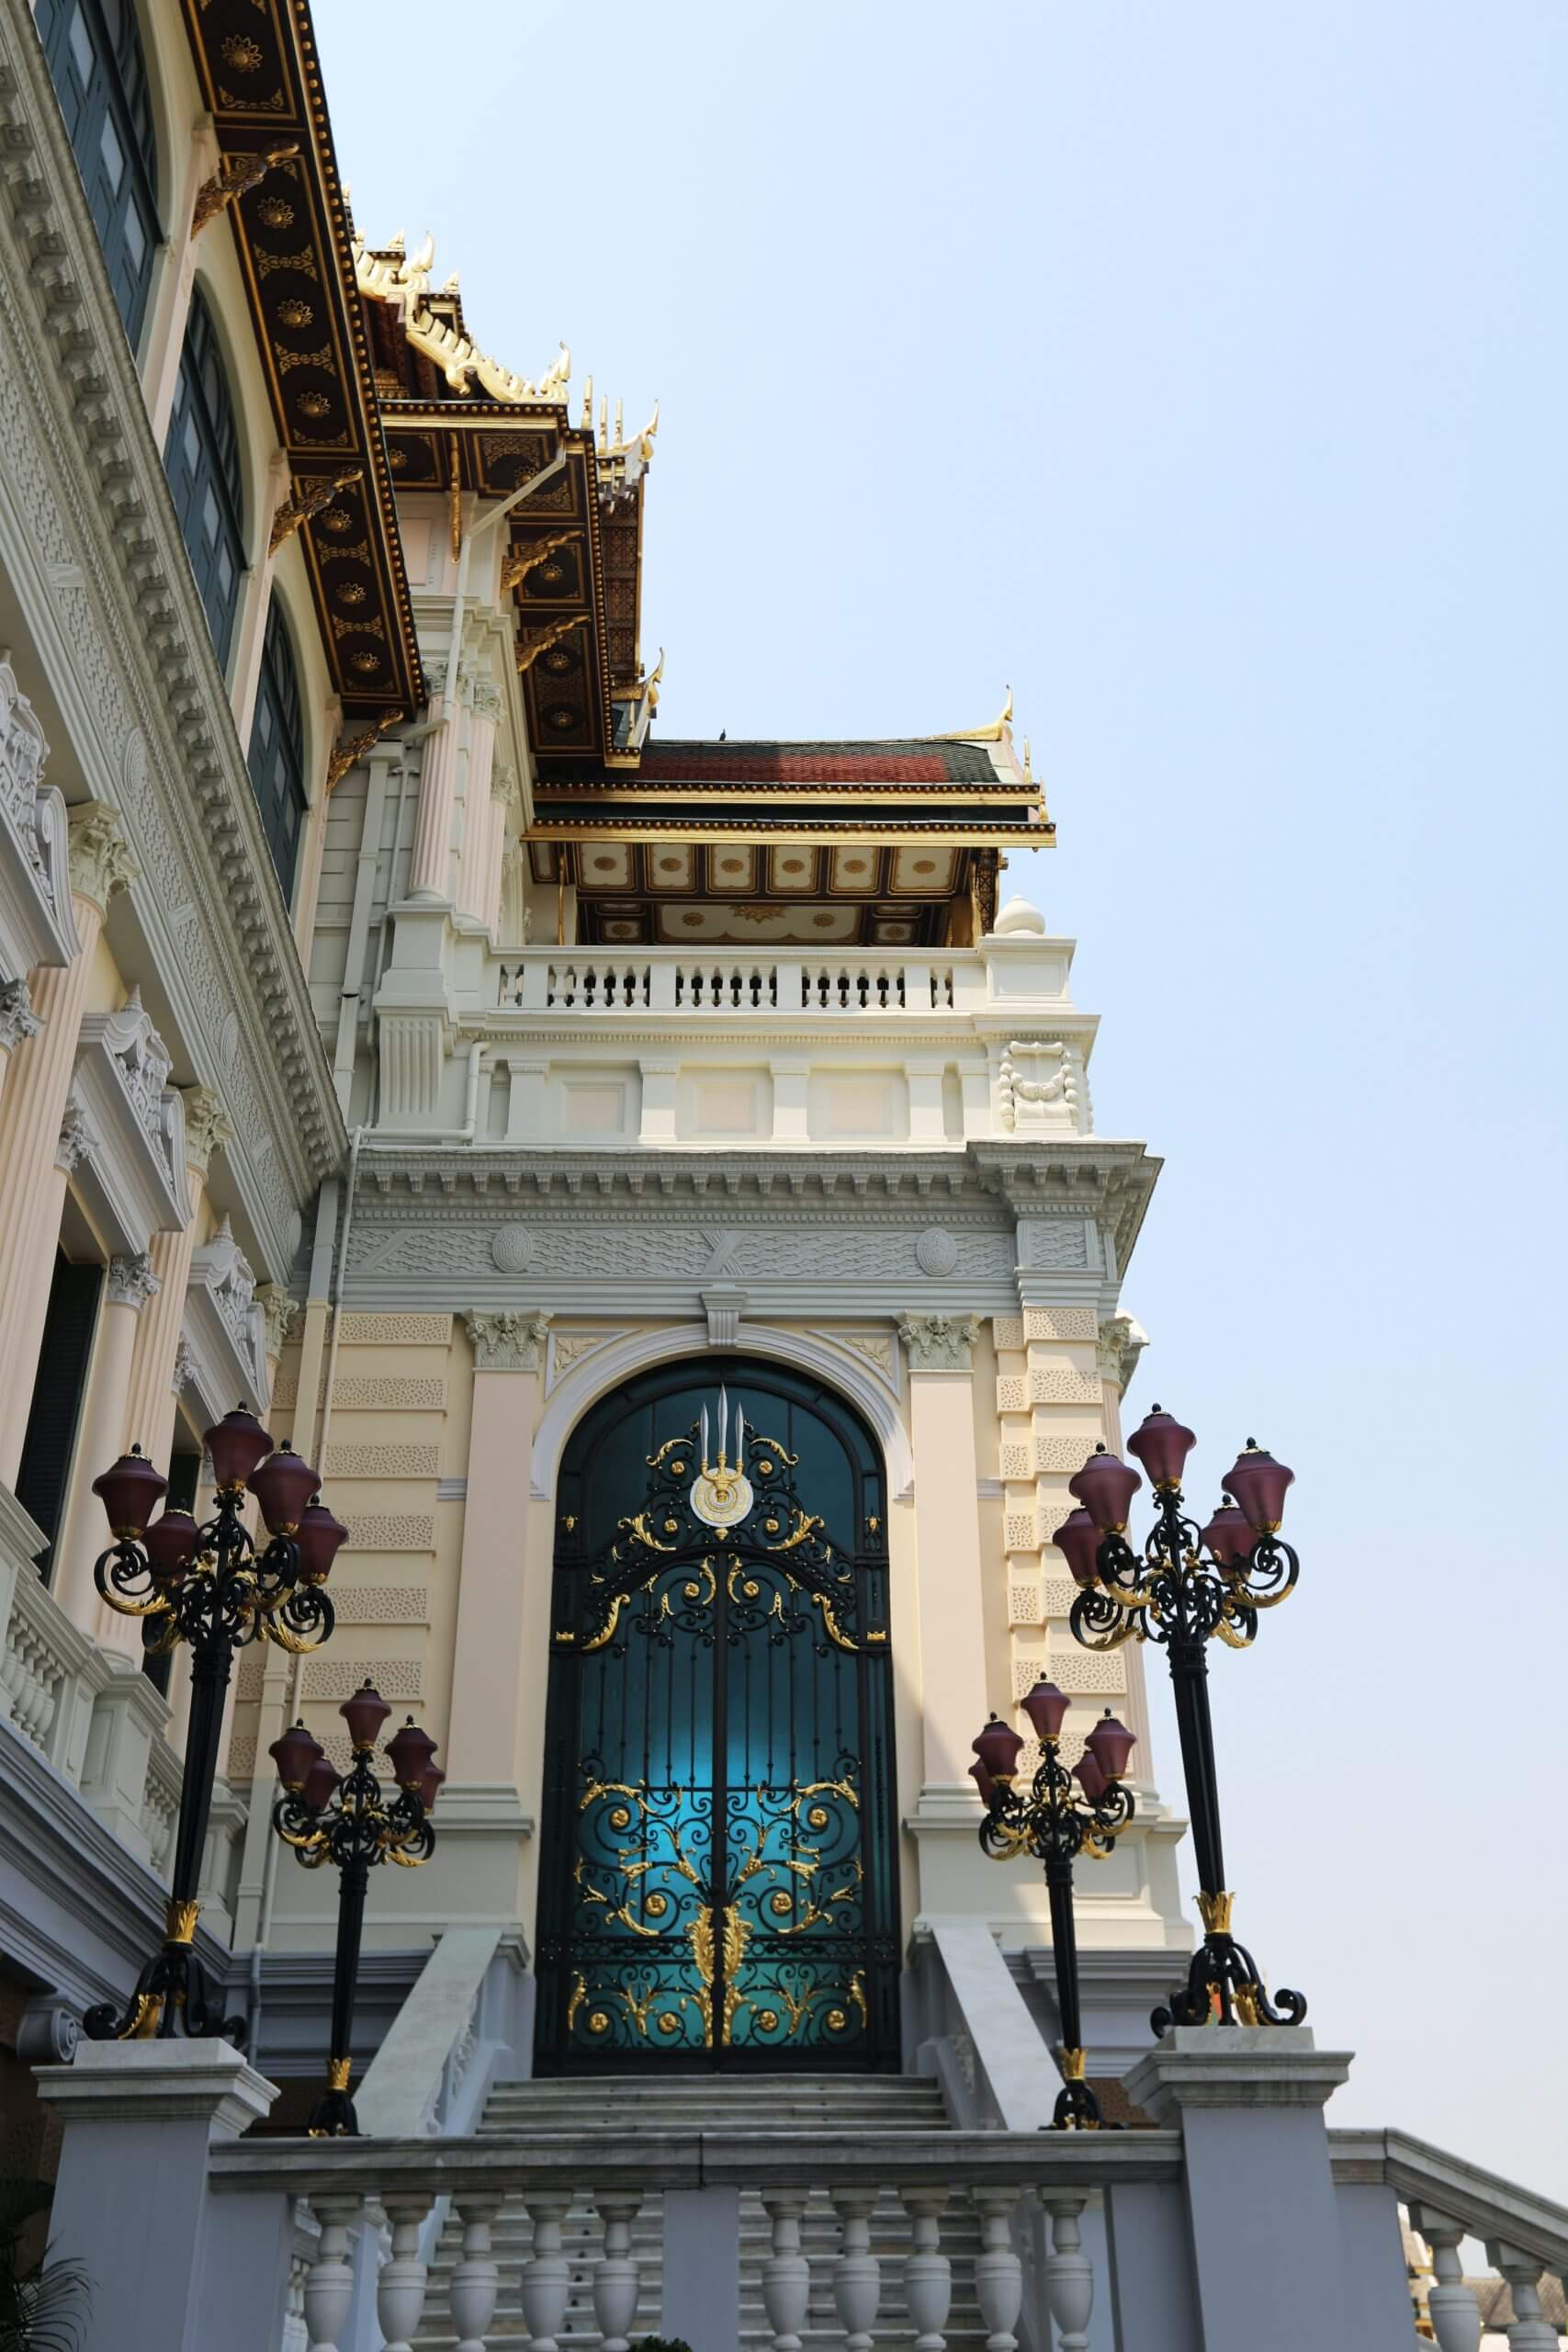 some of the beautiful architecture of the Grand palace.